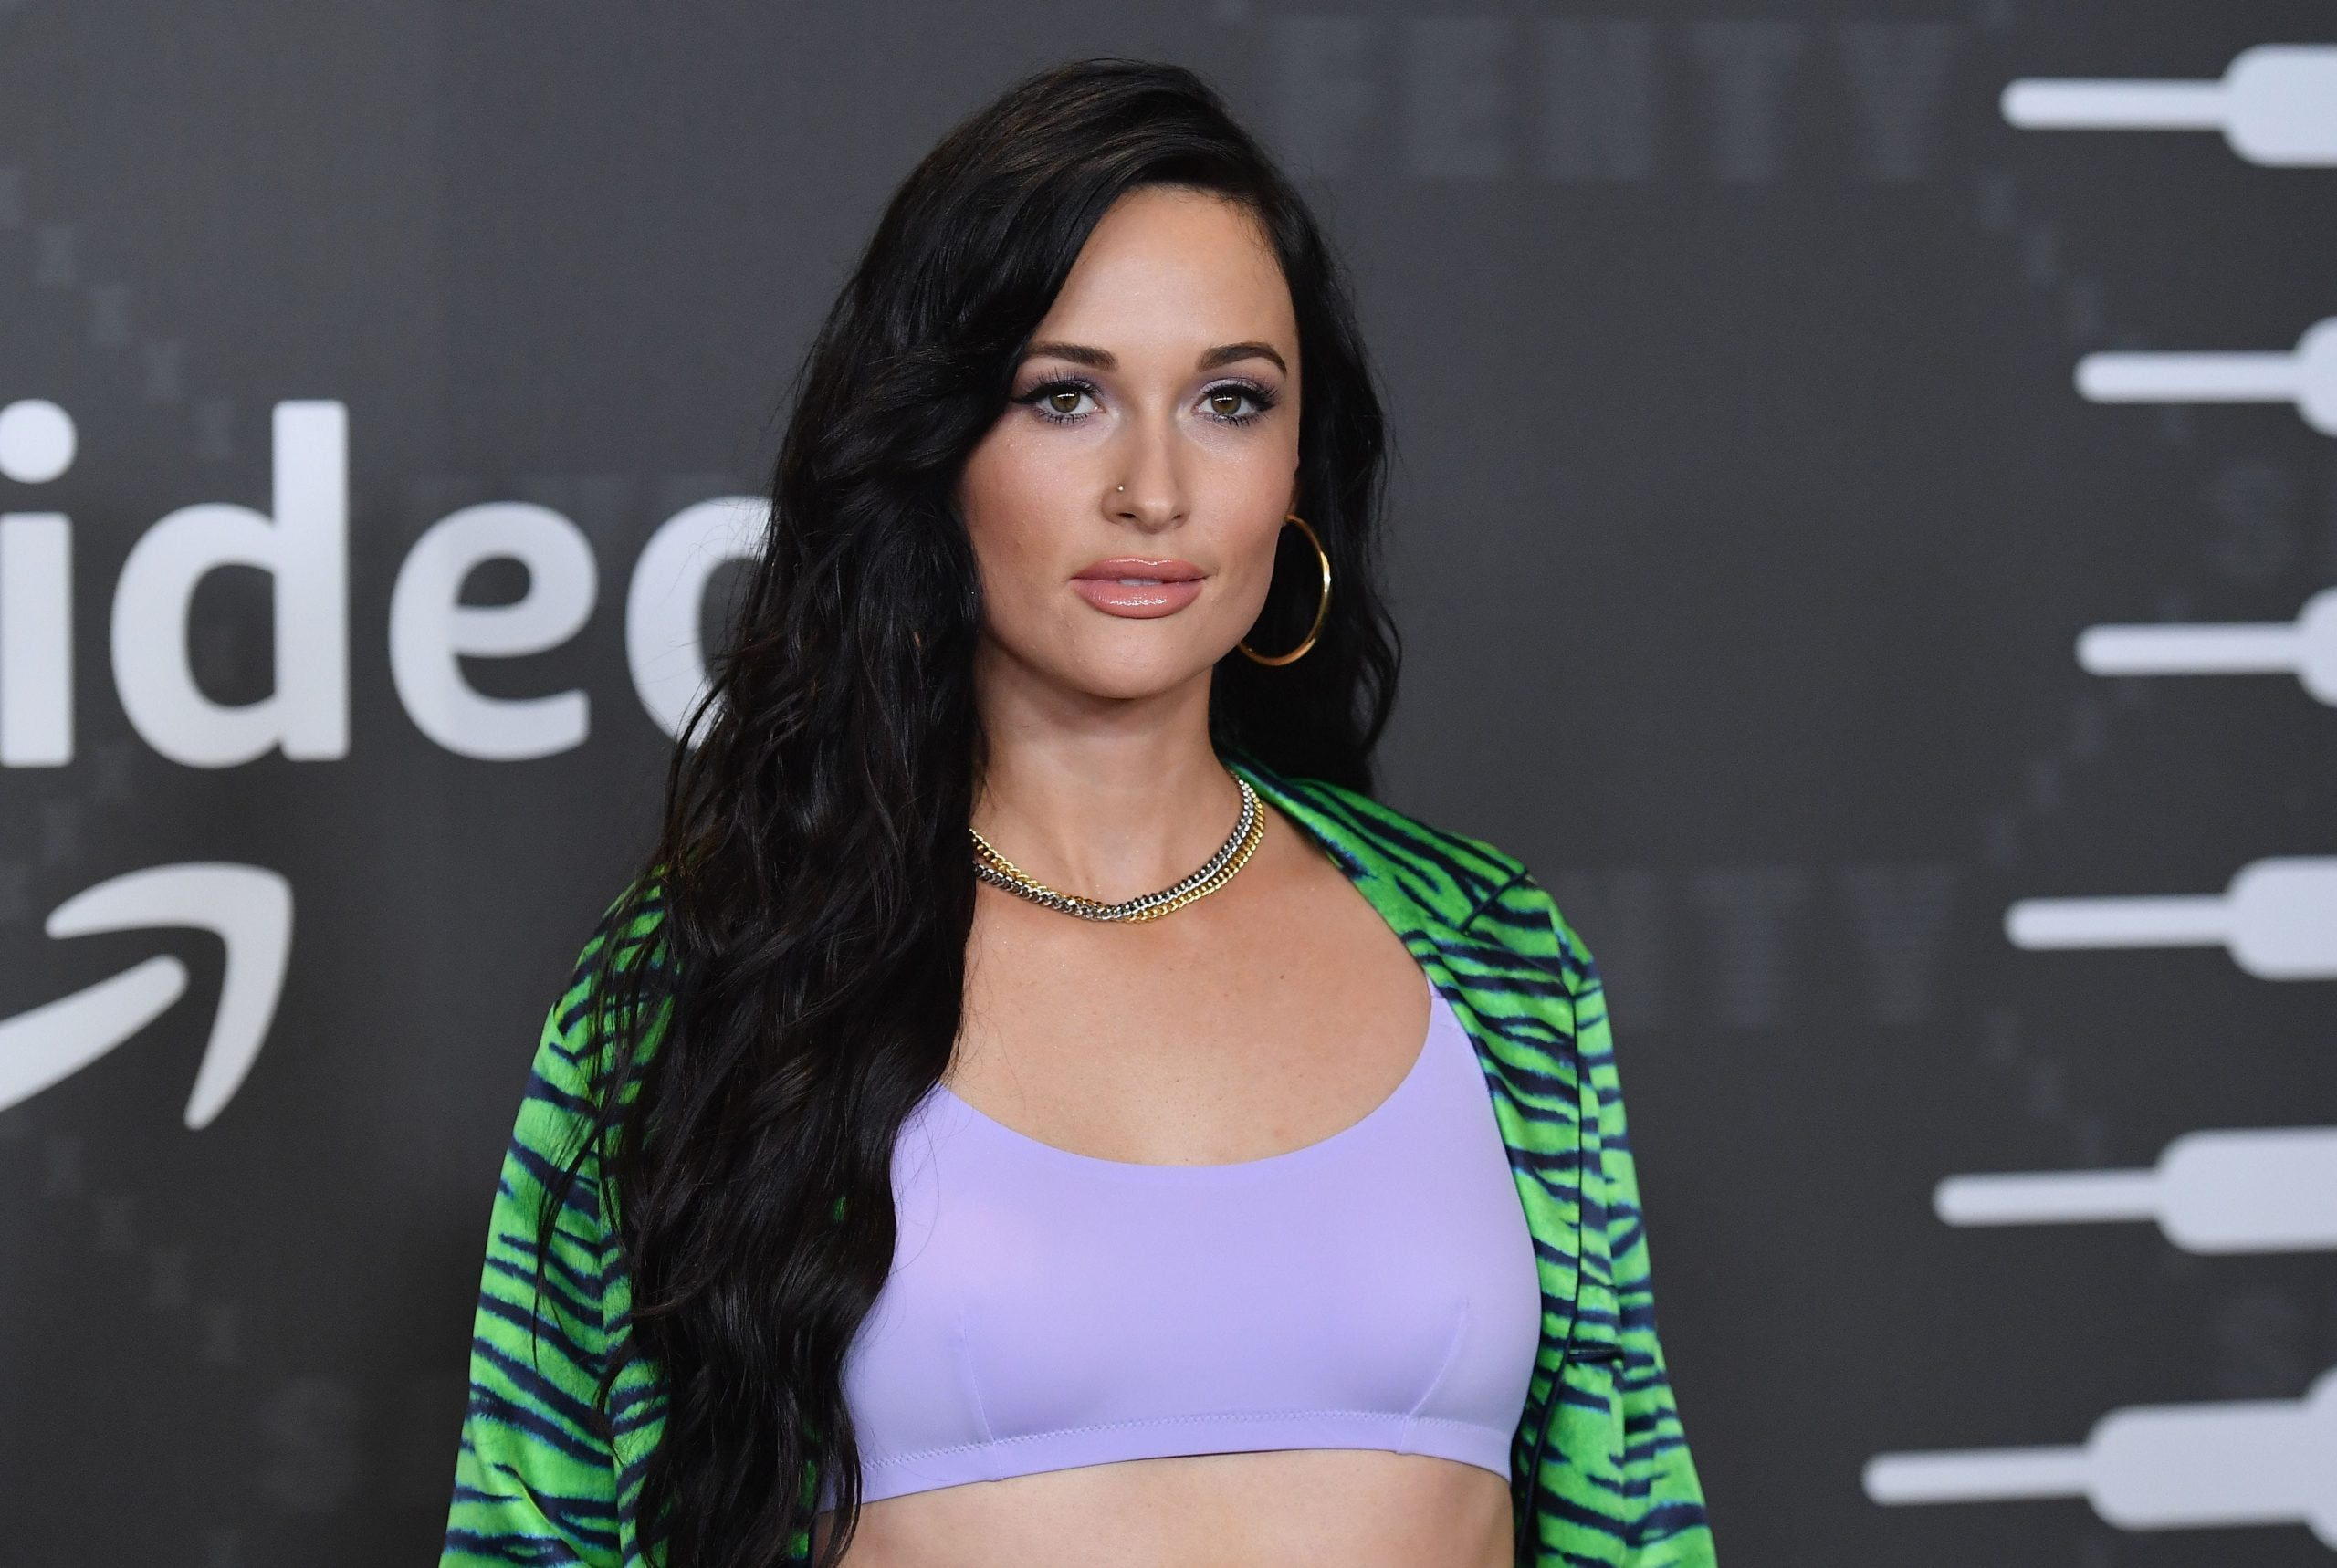 Kacey Musgraves Says She Was Passing on Inside Before Split from Ruston Kelly 2 scaled